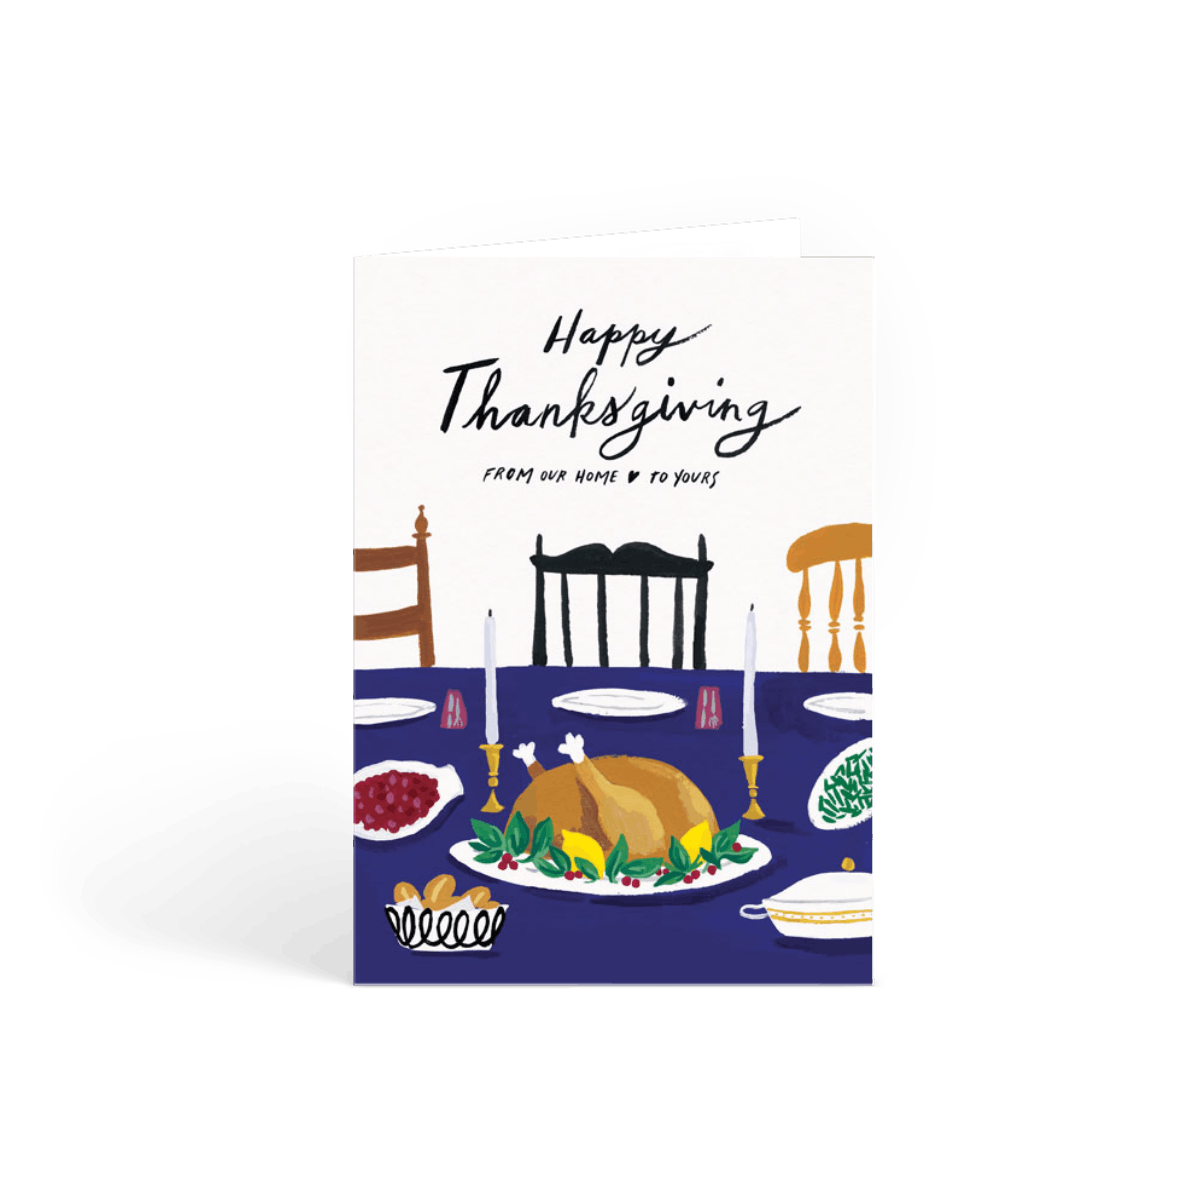 Https%3a%2f%2fwww.papier.com%2fproduct image%2f11008%2f2%2fthanksgiving table 2801 front 1473766305.png?ixlib=rb 1.1